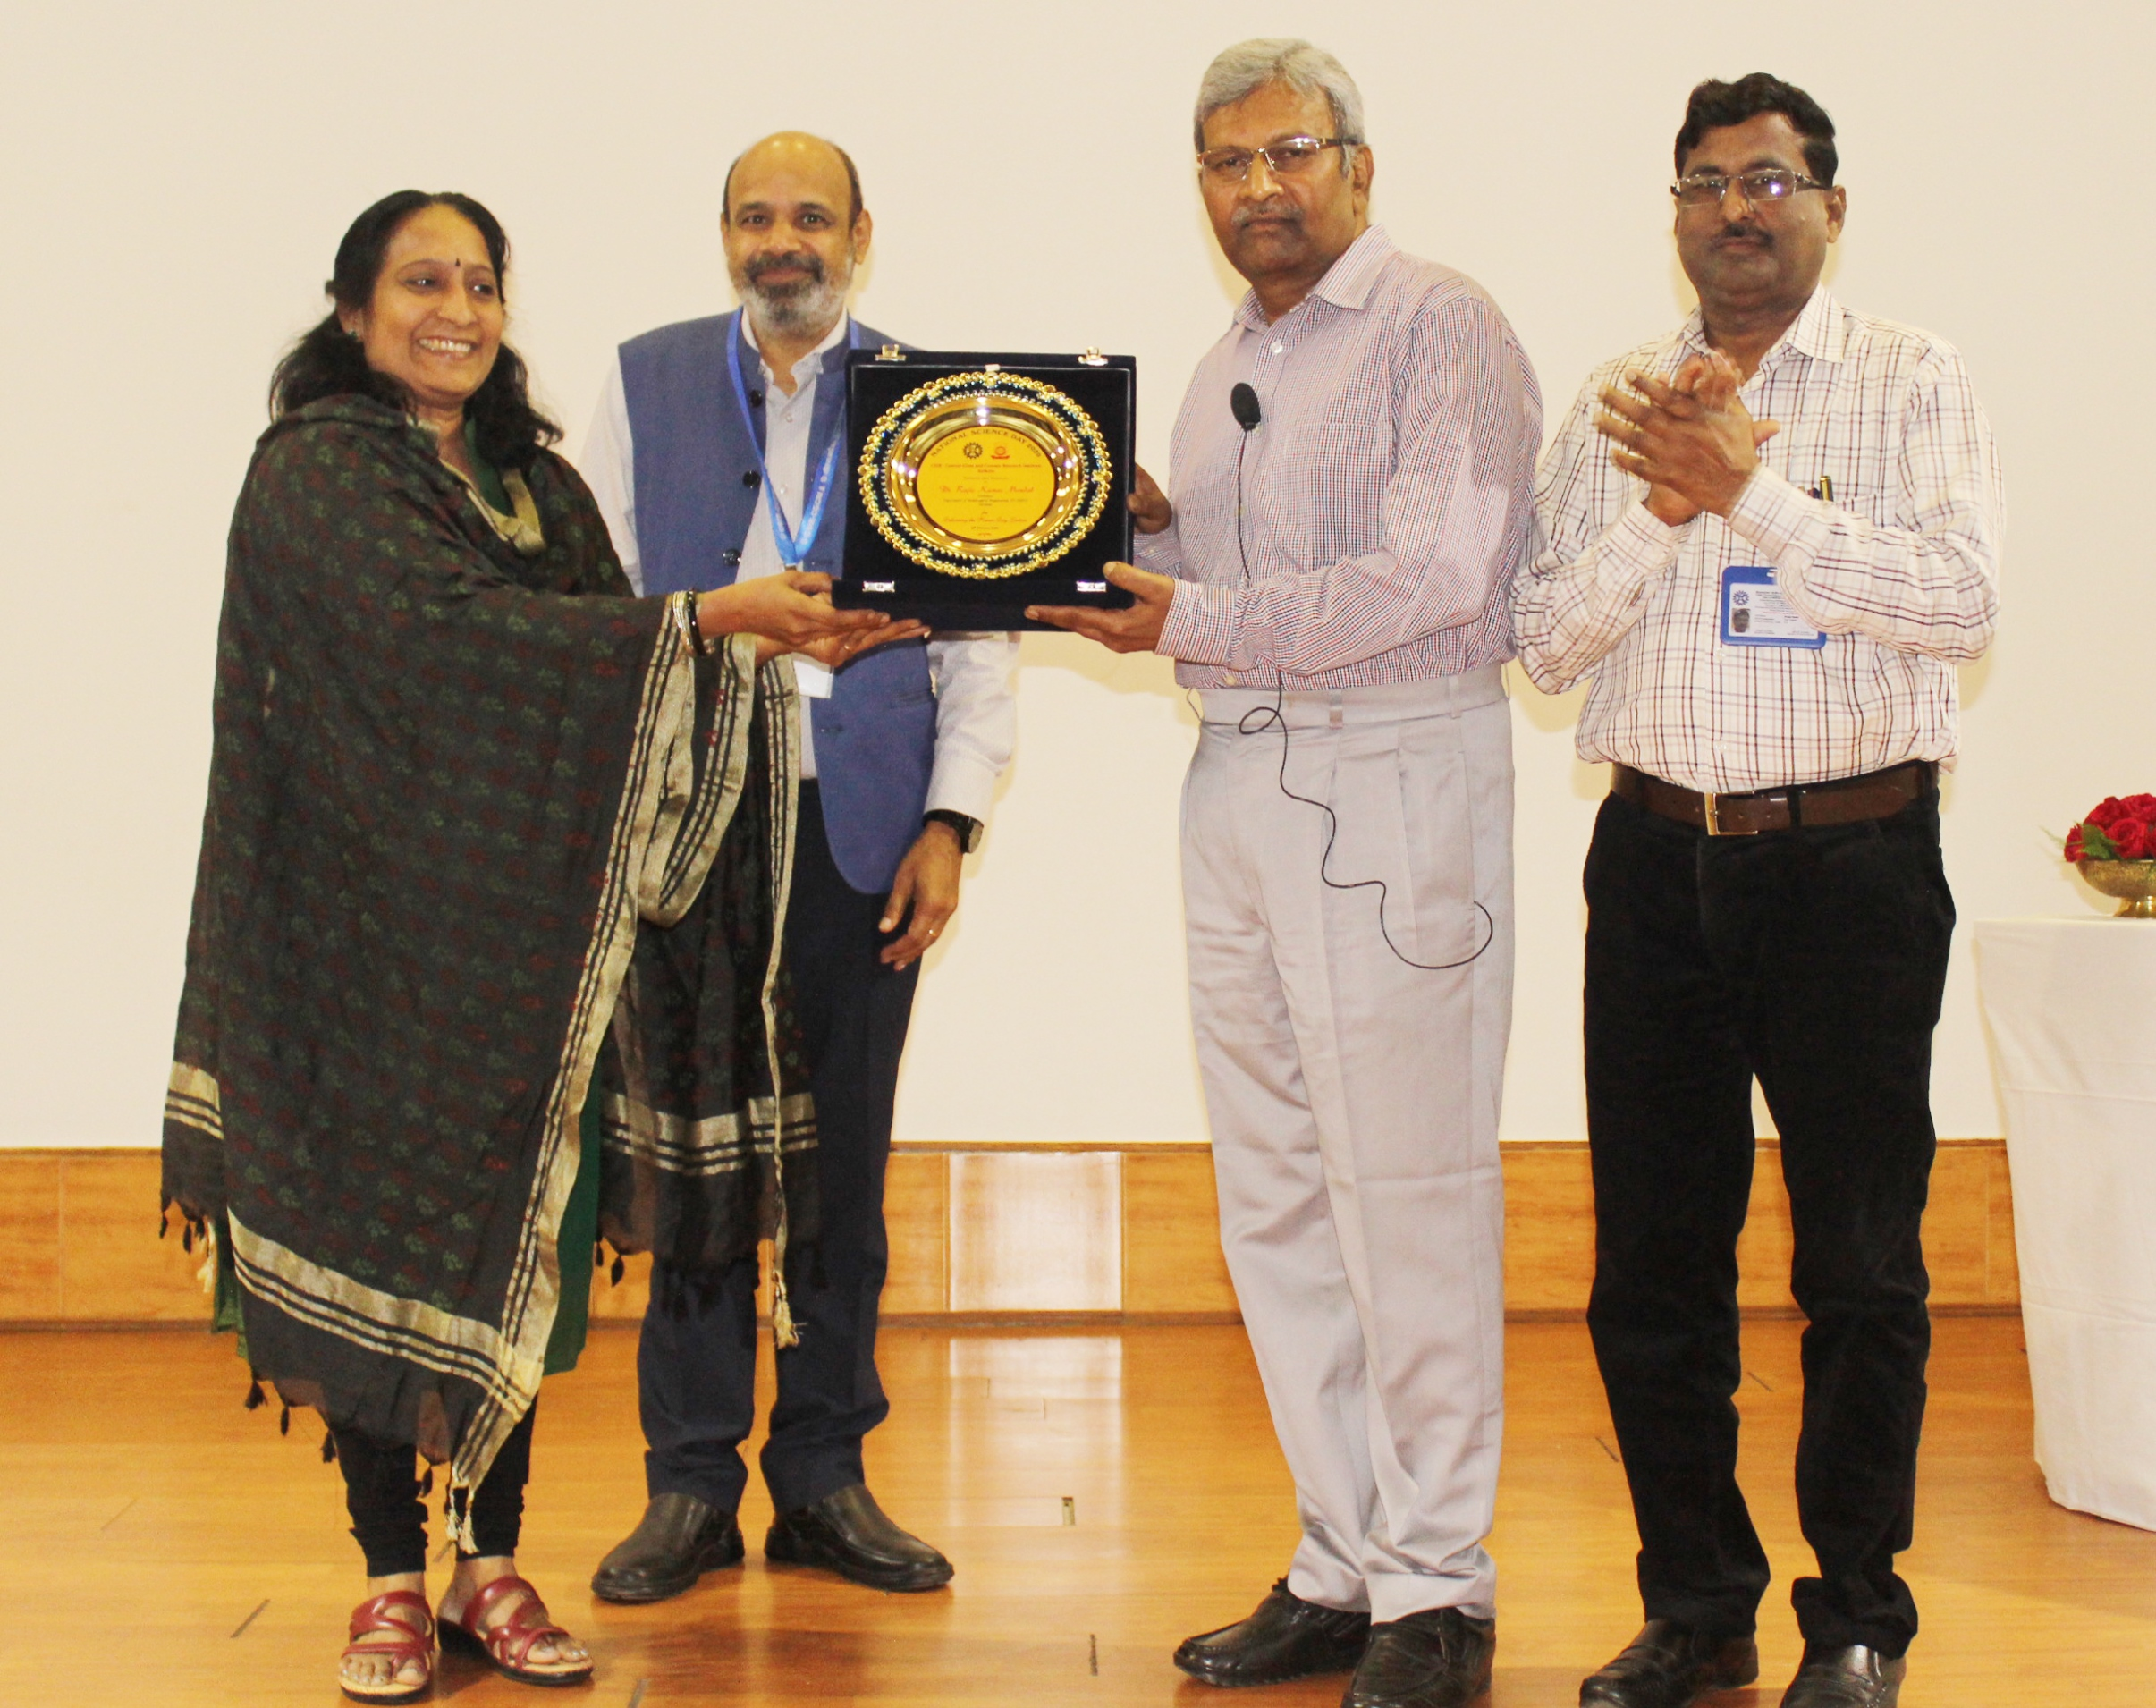 Presentation of memento to Prof. R. K. Mandal